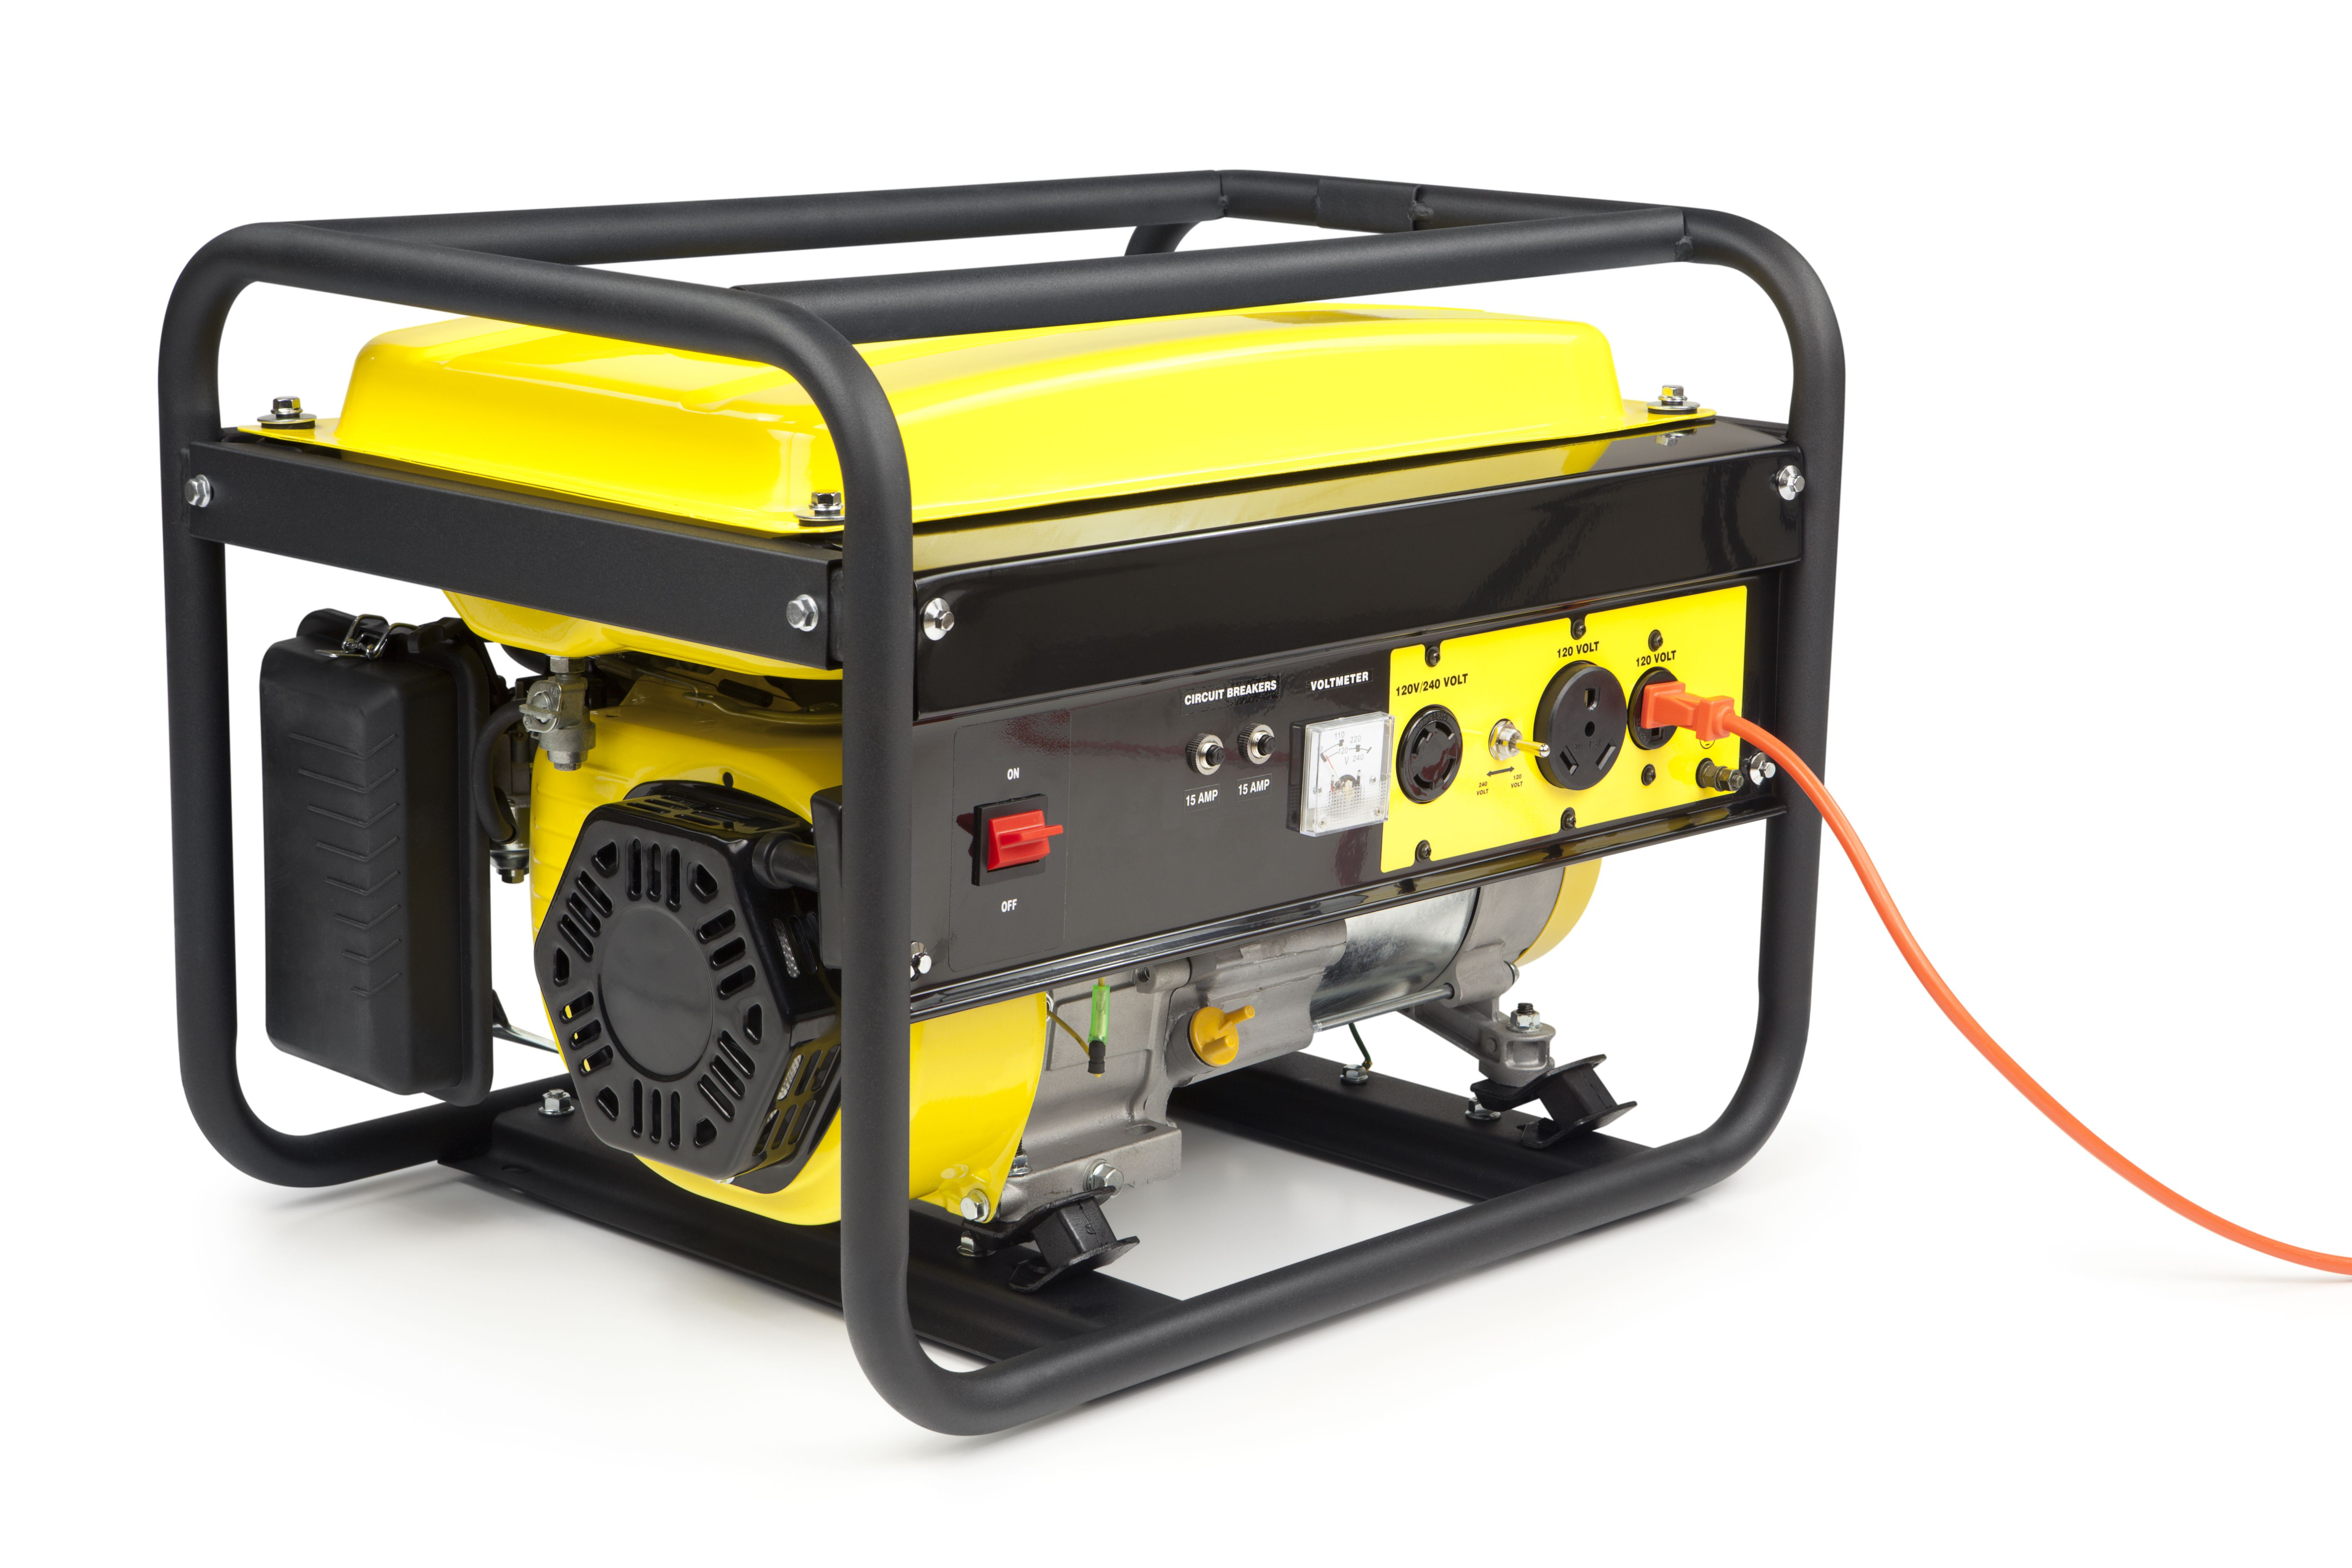 hight resolution of how to hook up a generator how to use a home generator power back generator wiring